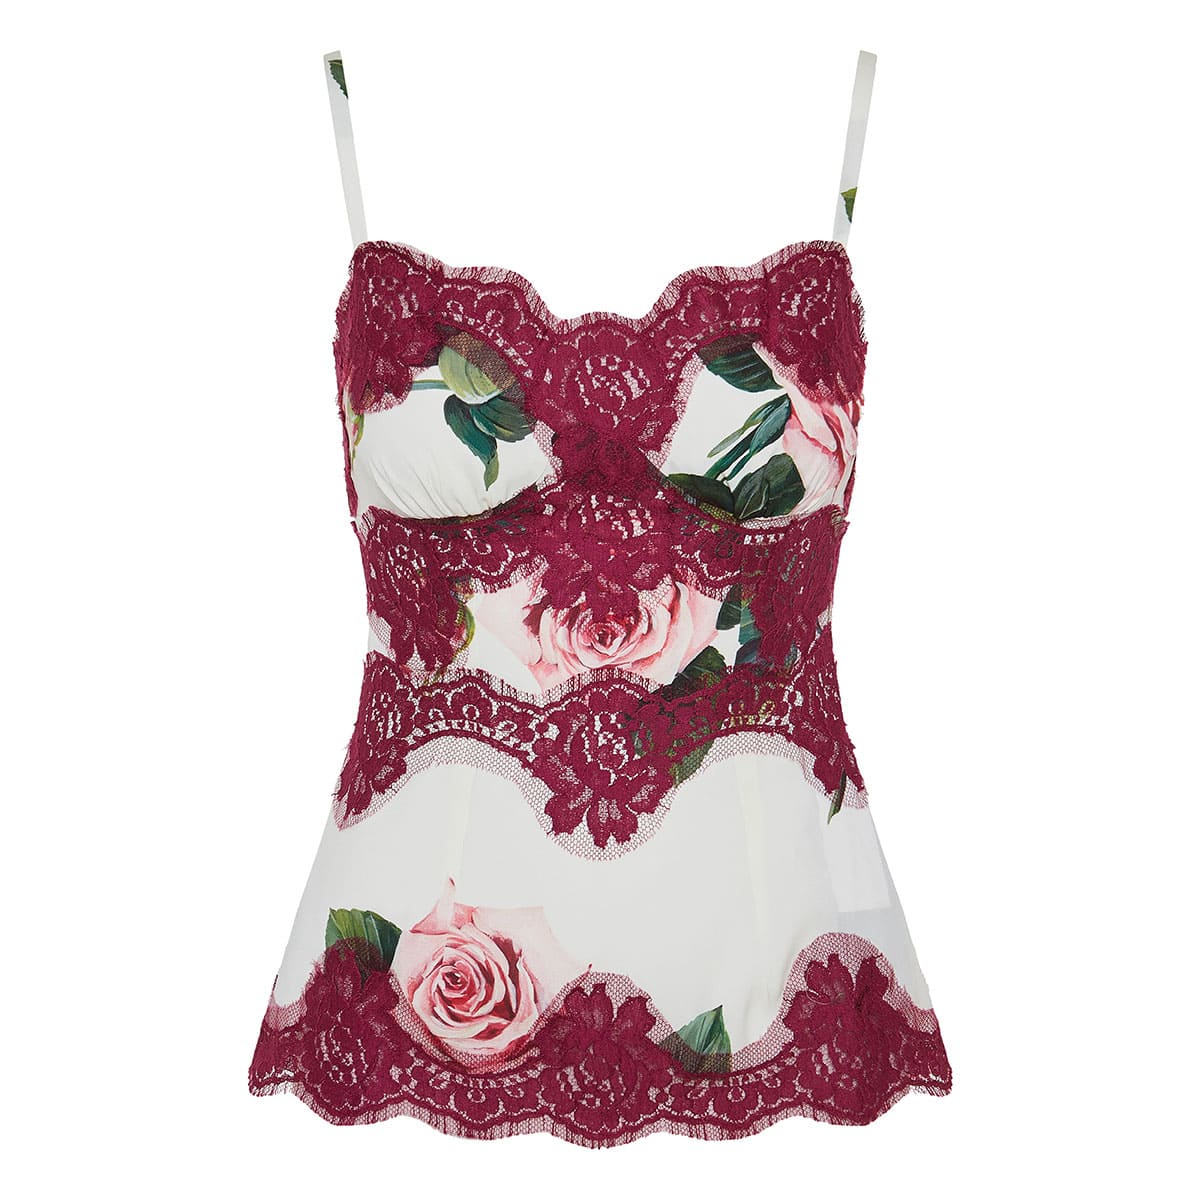 Lace-paneled floral camisole top